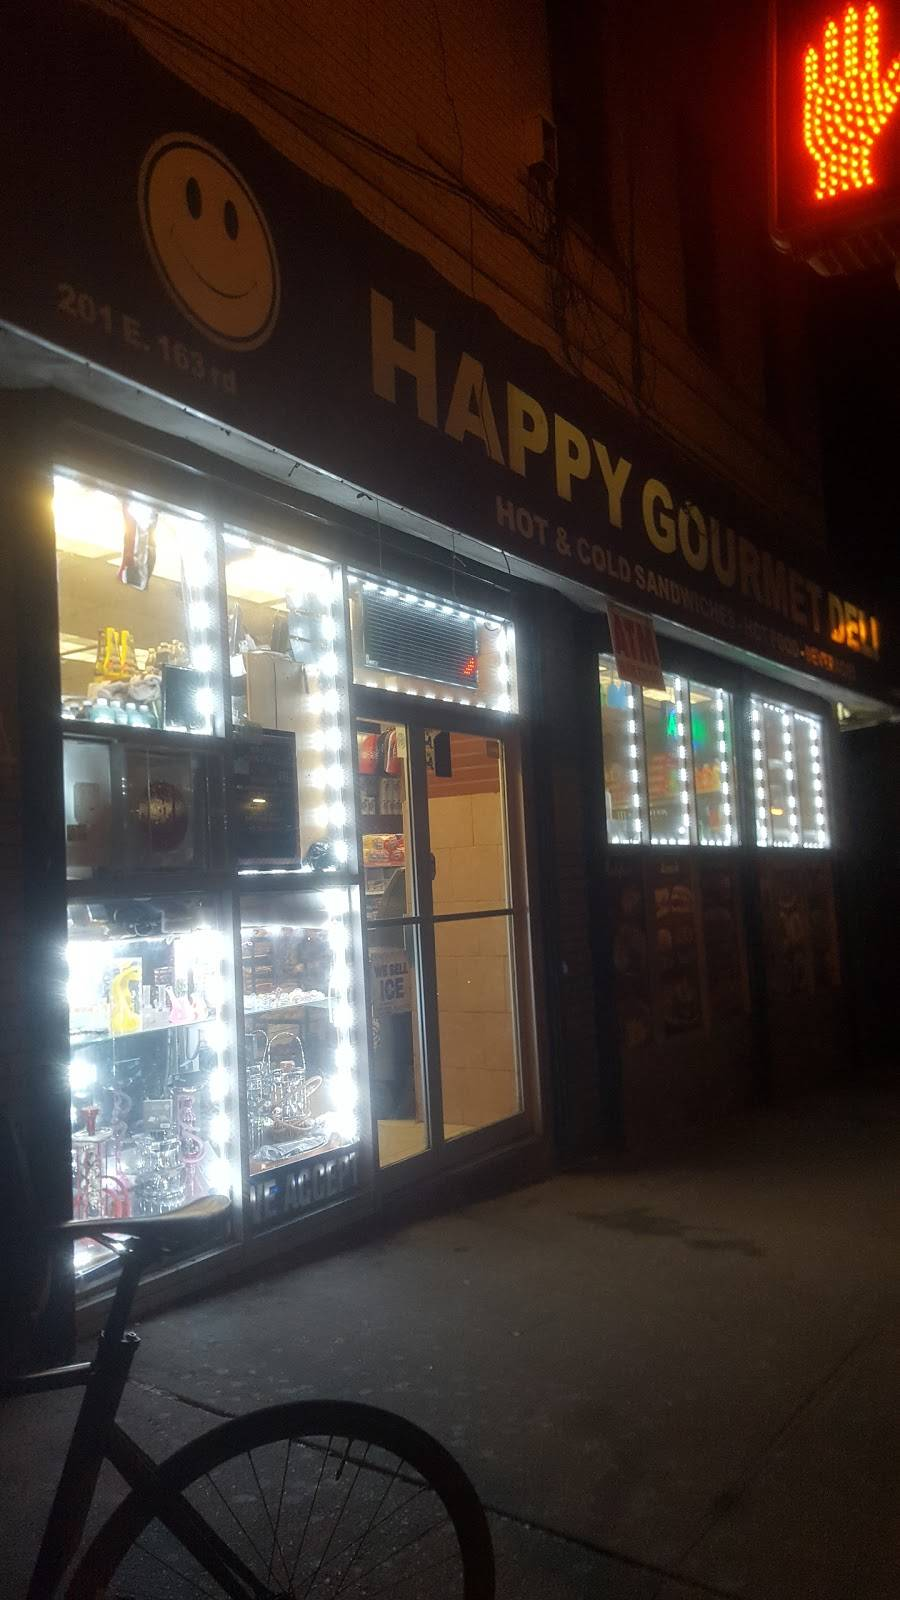 Happy Deli | meal takeaway | 201 E 163rd St, Bronx, NY 10451, USA | 7185904848 OR +1 718-590-4848